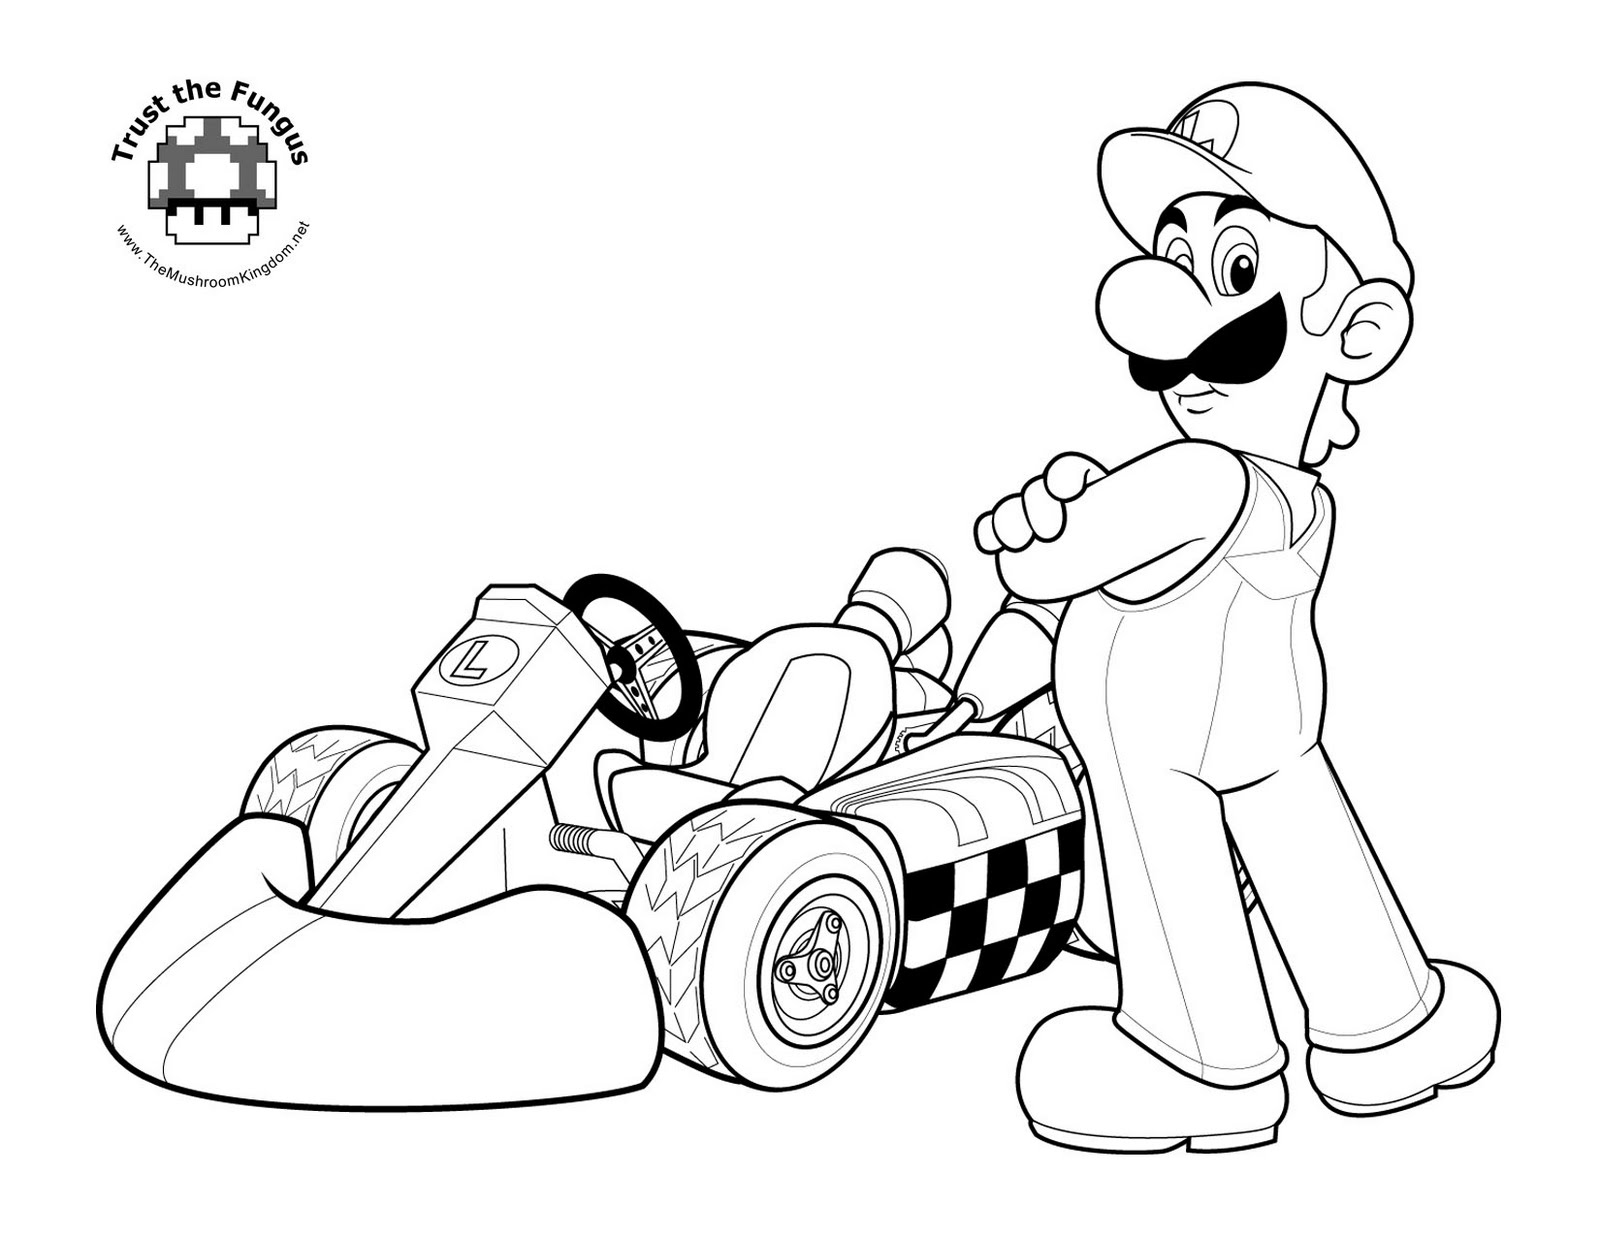 mega mario coloring pages - photo#23